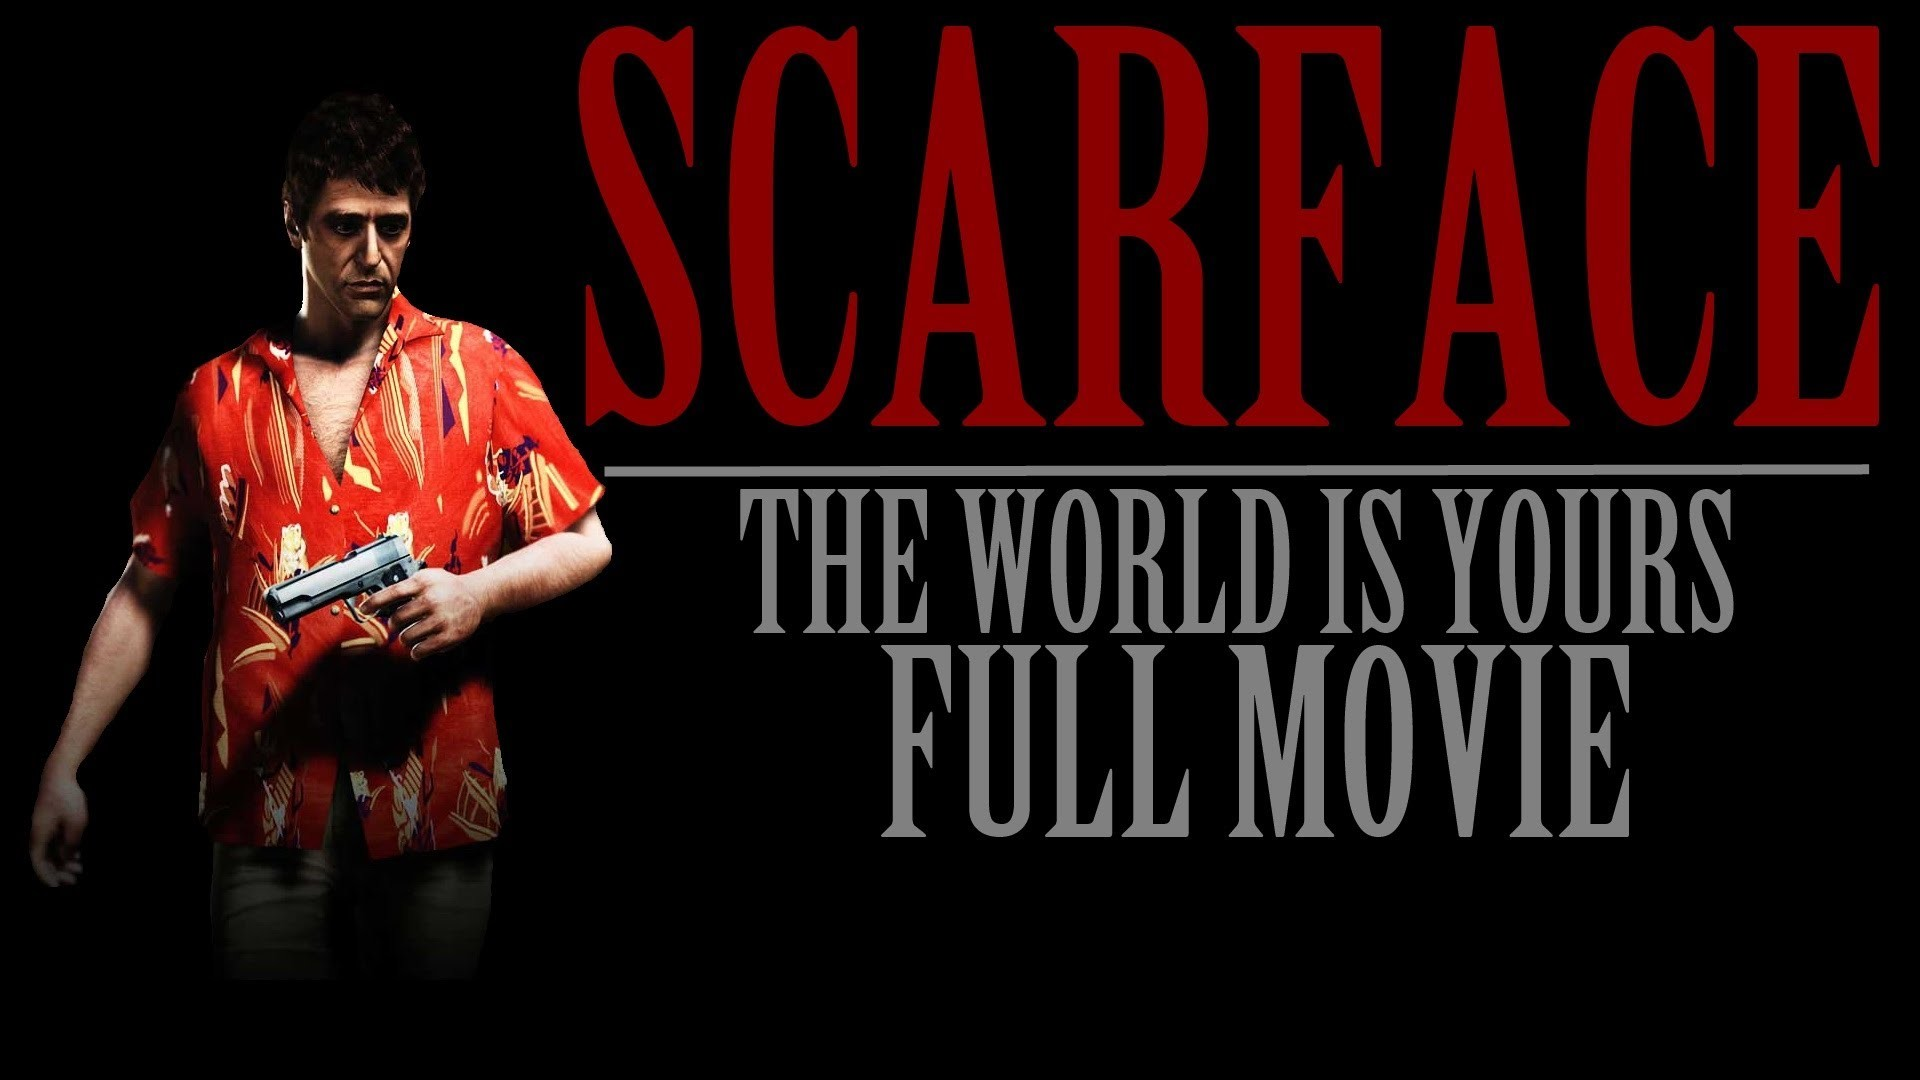 Scarface wallpaper hd 72 images - The world is yours wallpaper ...